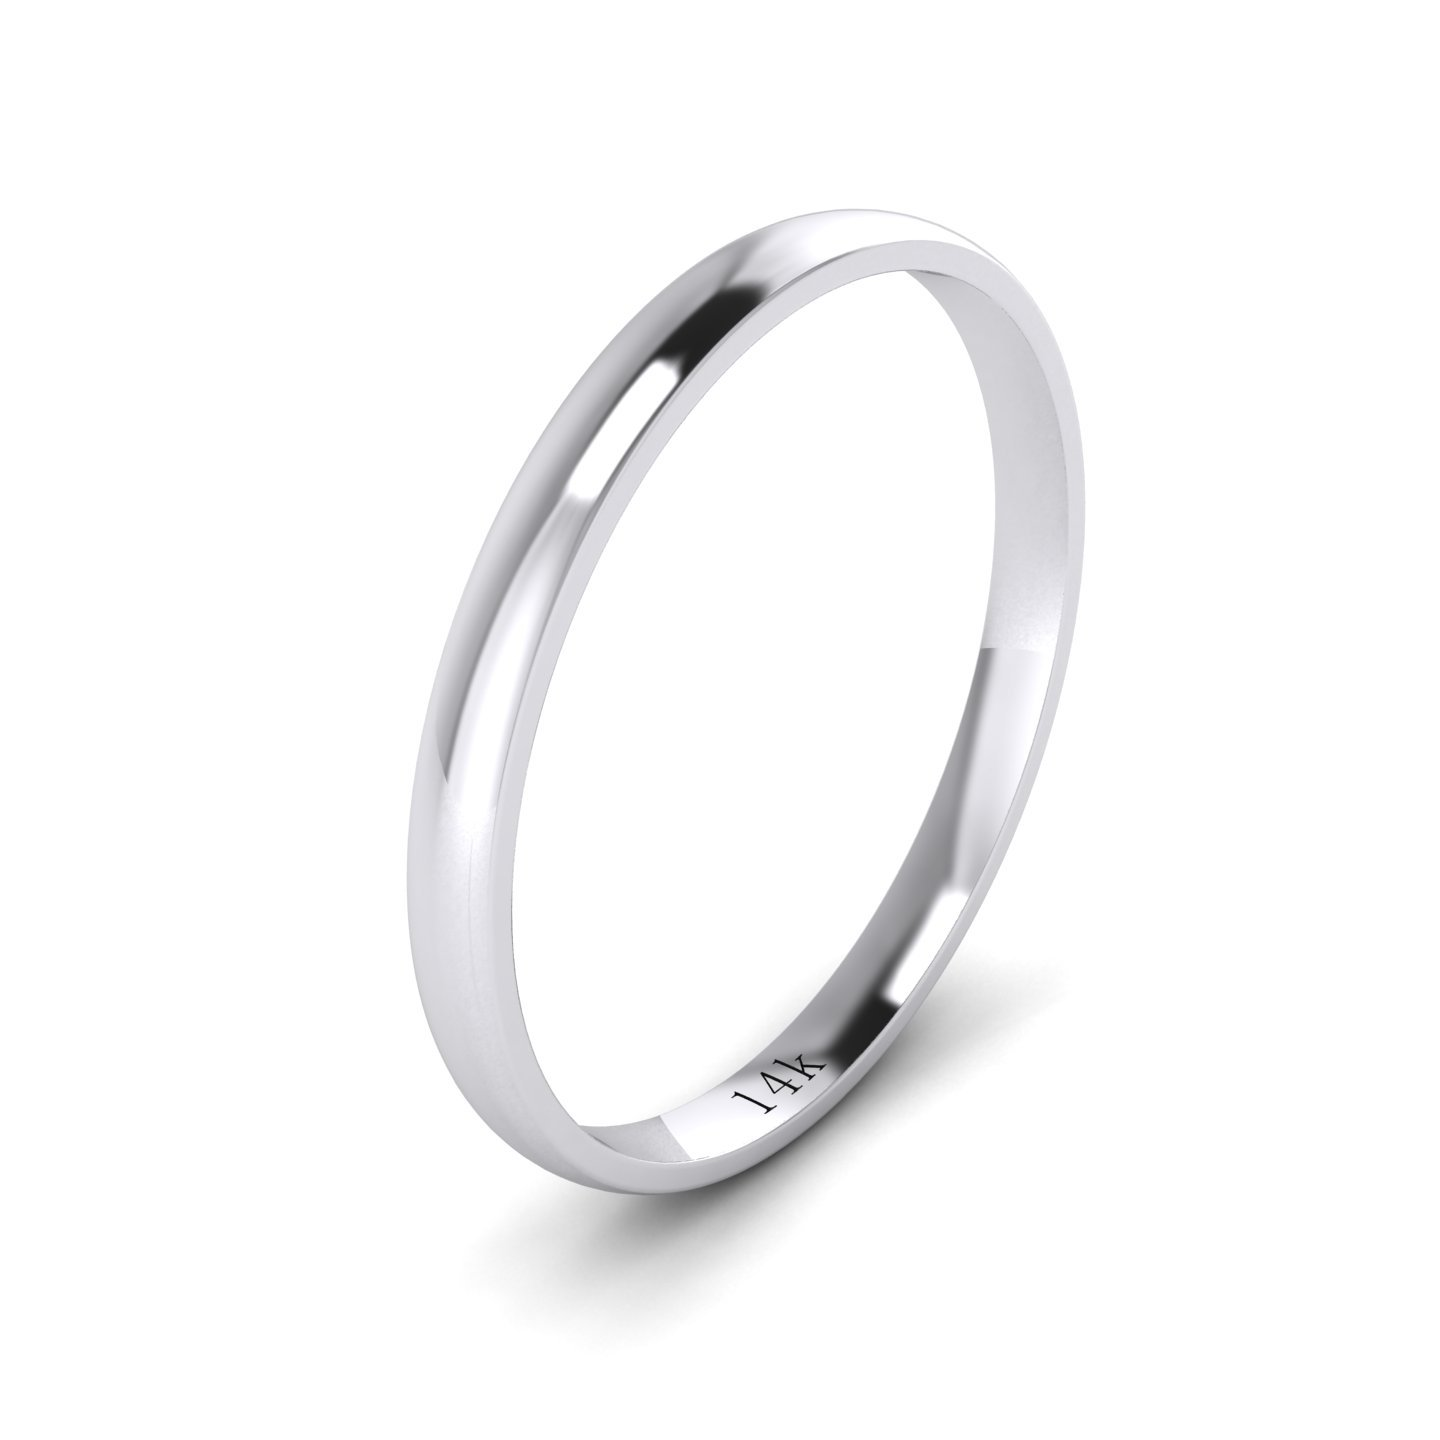 Unisex 14k White Gold 2mm Light Court Shape Comfort Fit Polished Wedding Ring Plain Band (11.5)